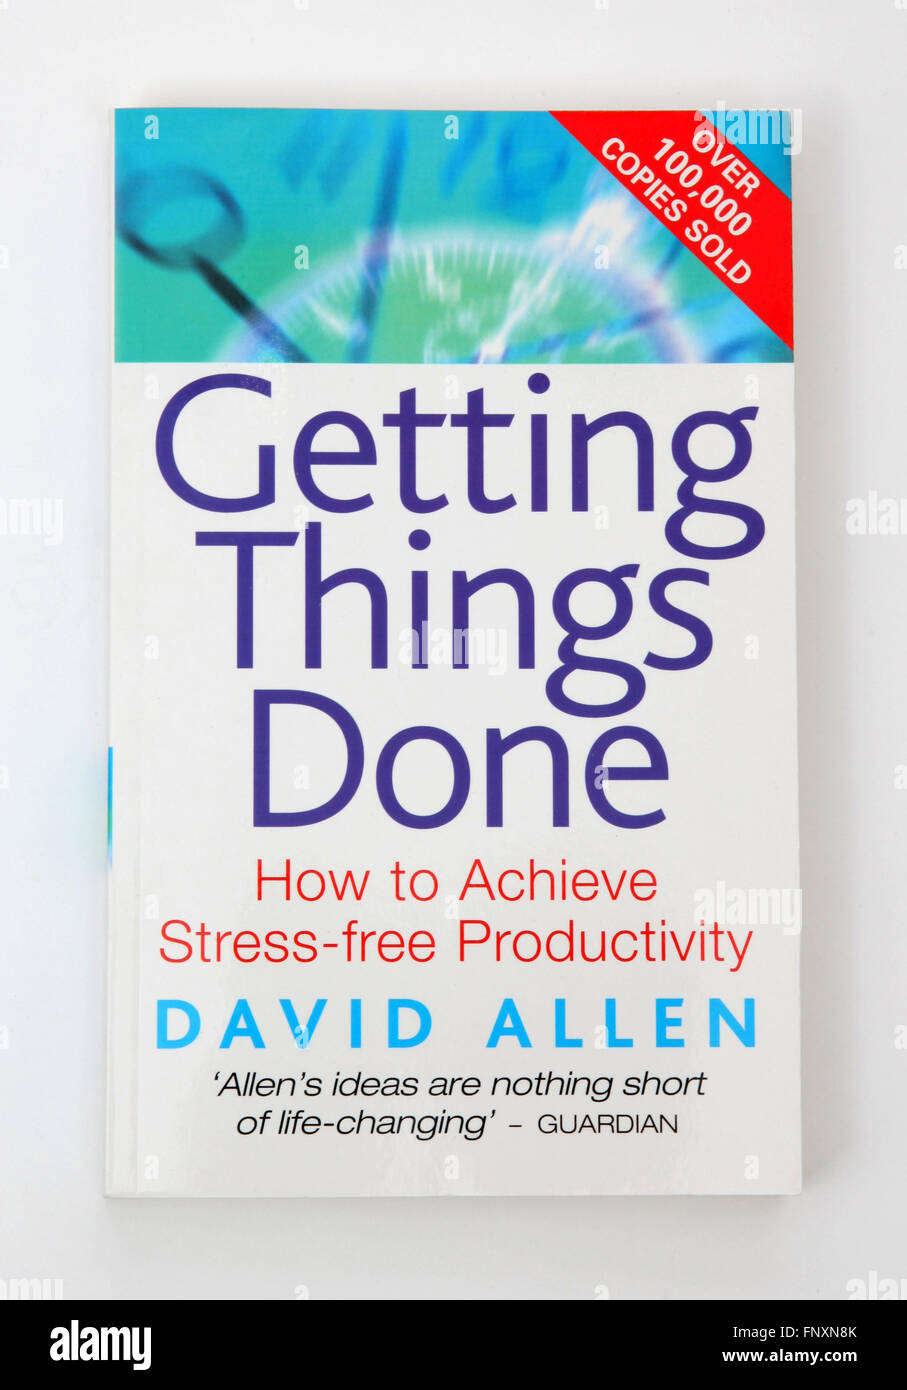 The book - Getting Things Done by David Allen - Stock Image